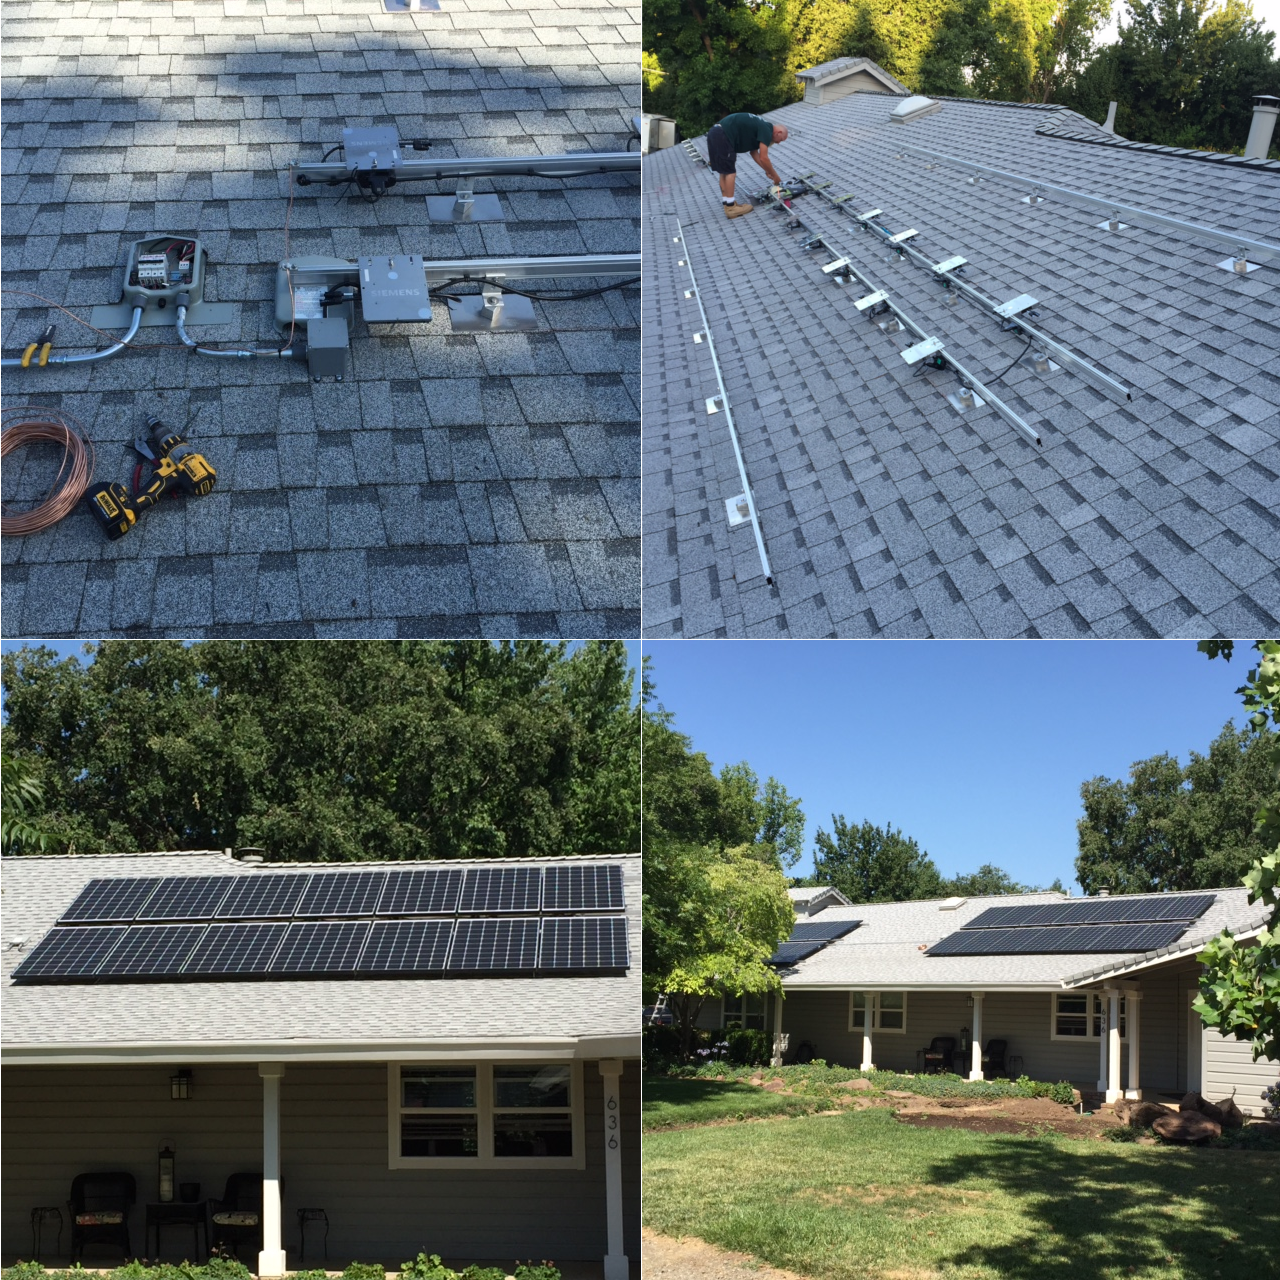 7.2 Kw Rooftop System with Aleo Solar Panels + Enphase Microinverters | RENVU